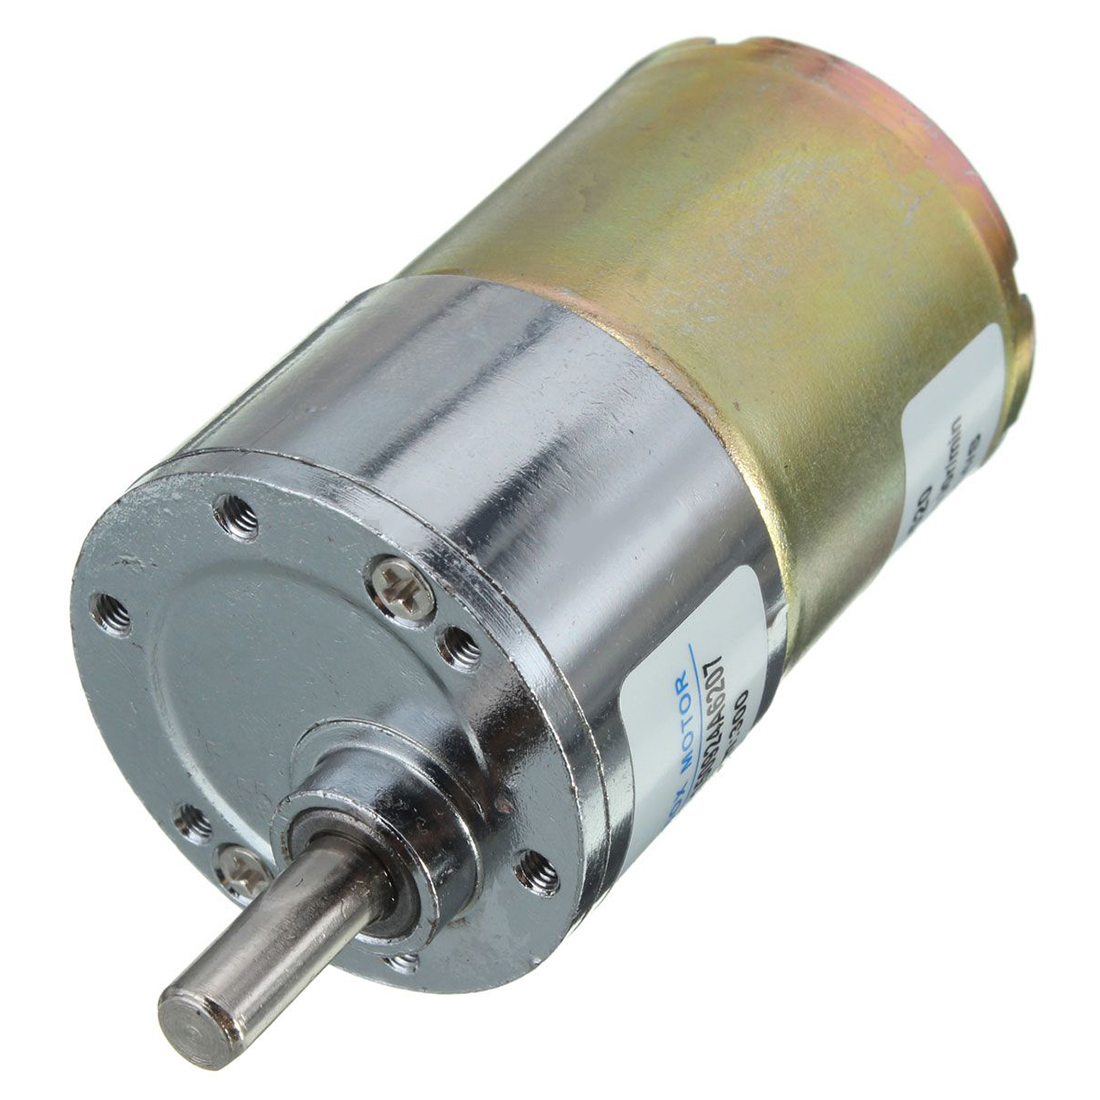 Zhengk 12v dc 300 rpm 37gb high torque gearbox electric for What is dc motor